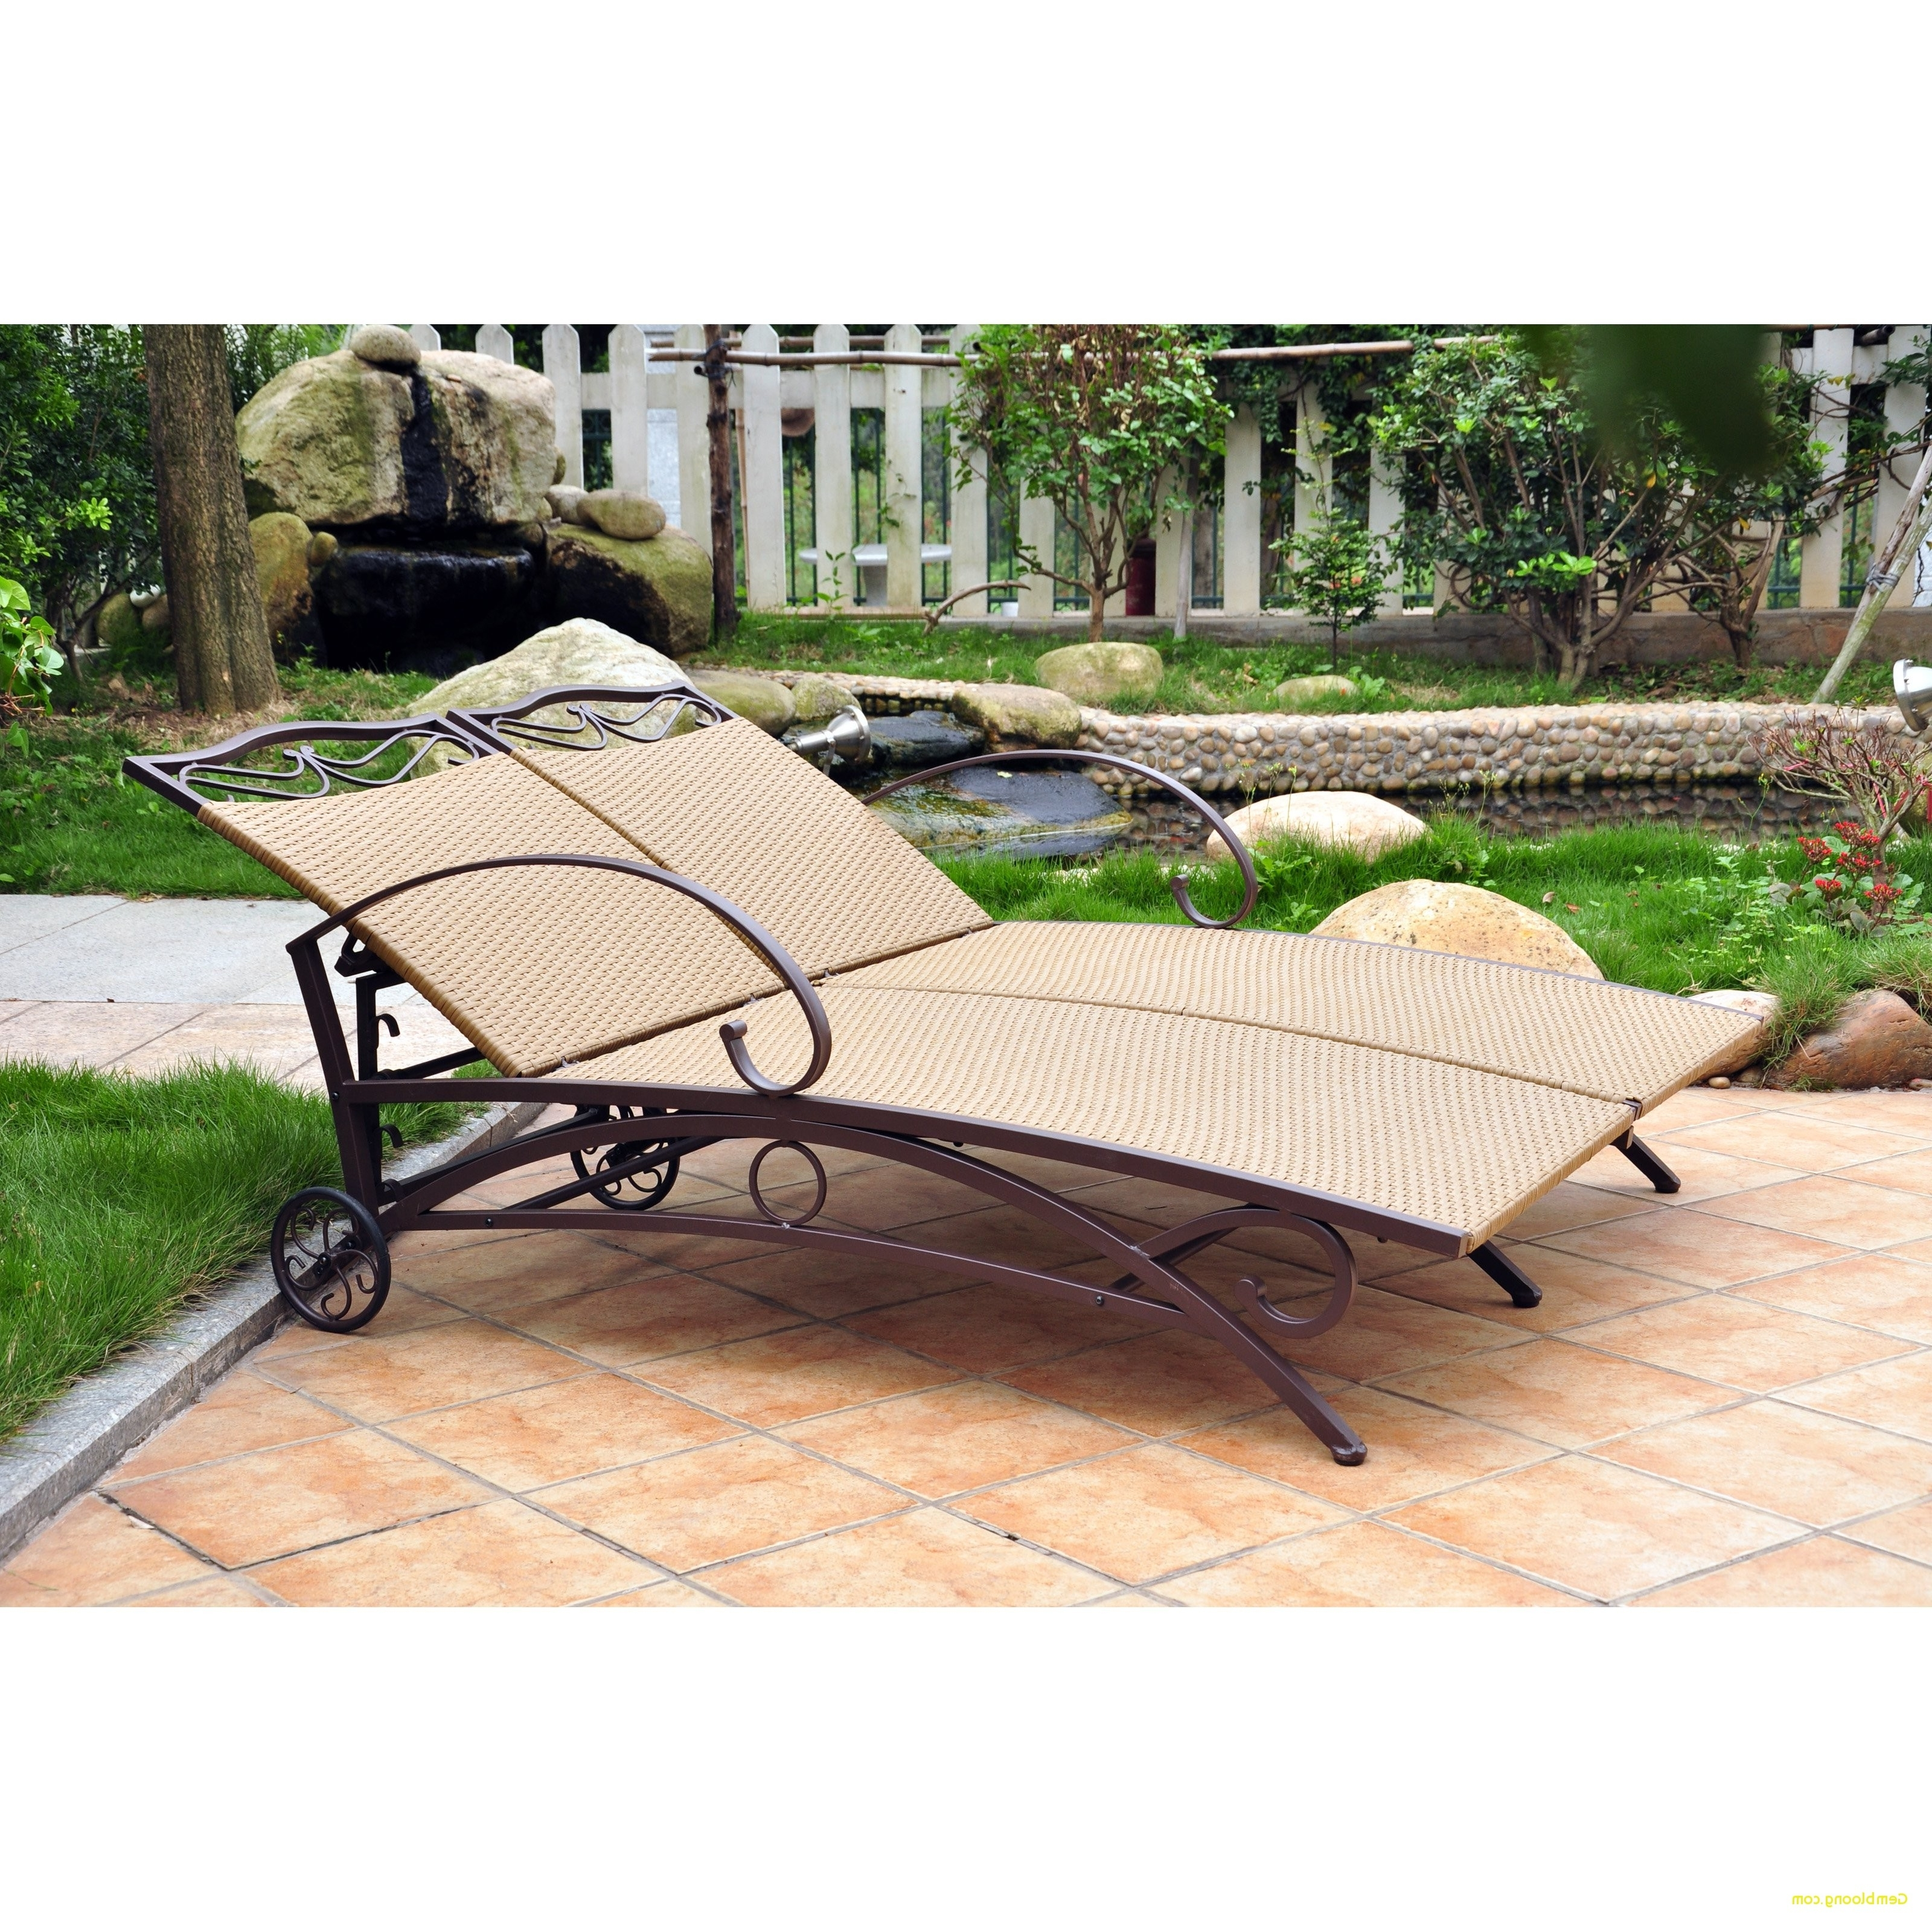 2018 Orbit Chaise Lounger Awesome $249 00 Mainstays Deluxe Orbit Chaise With Regard To Orbit Chaise Lounges (View 10 of 15)